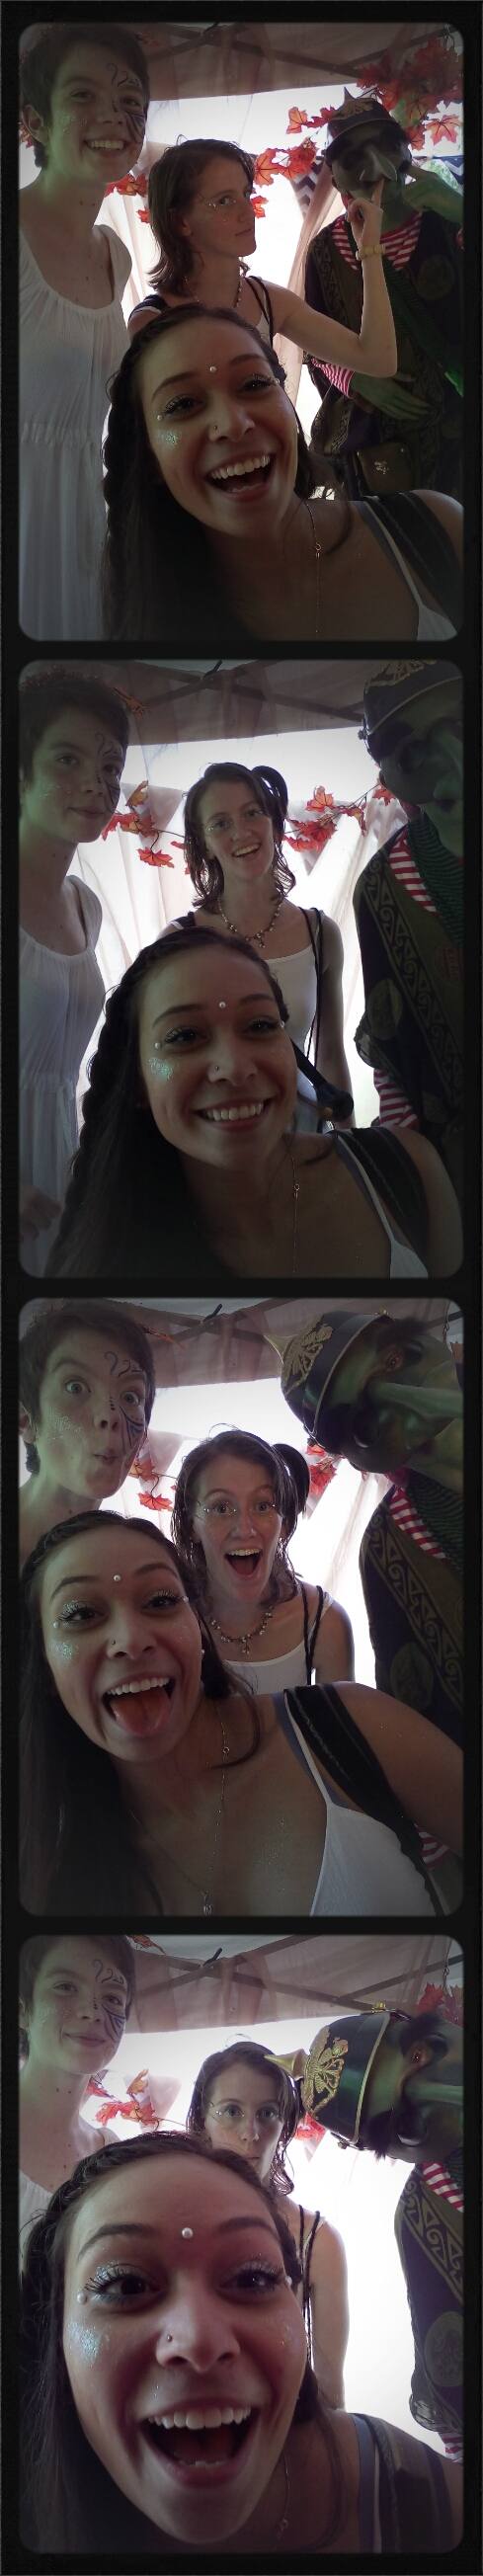 Pocketbooth_20150613144842